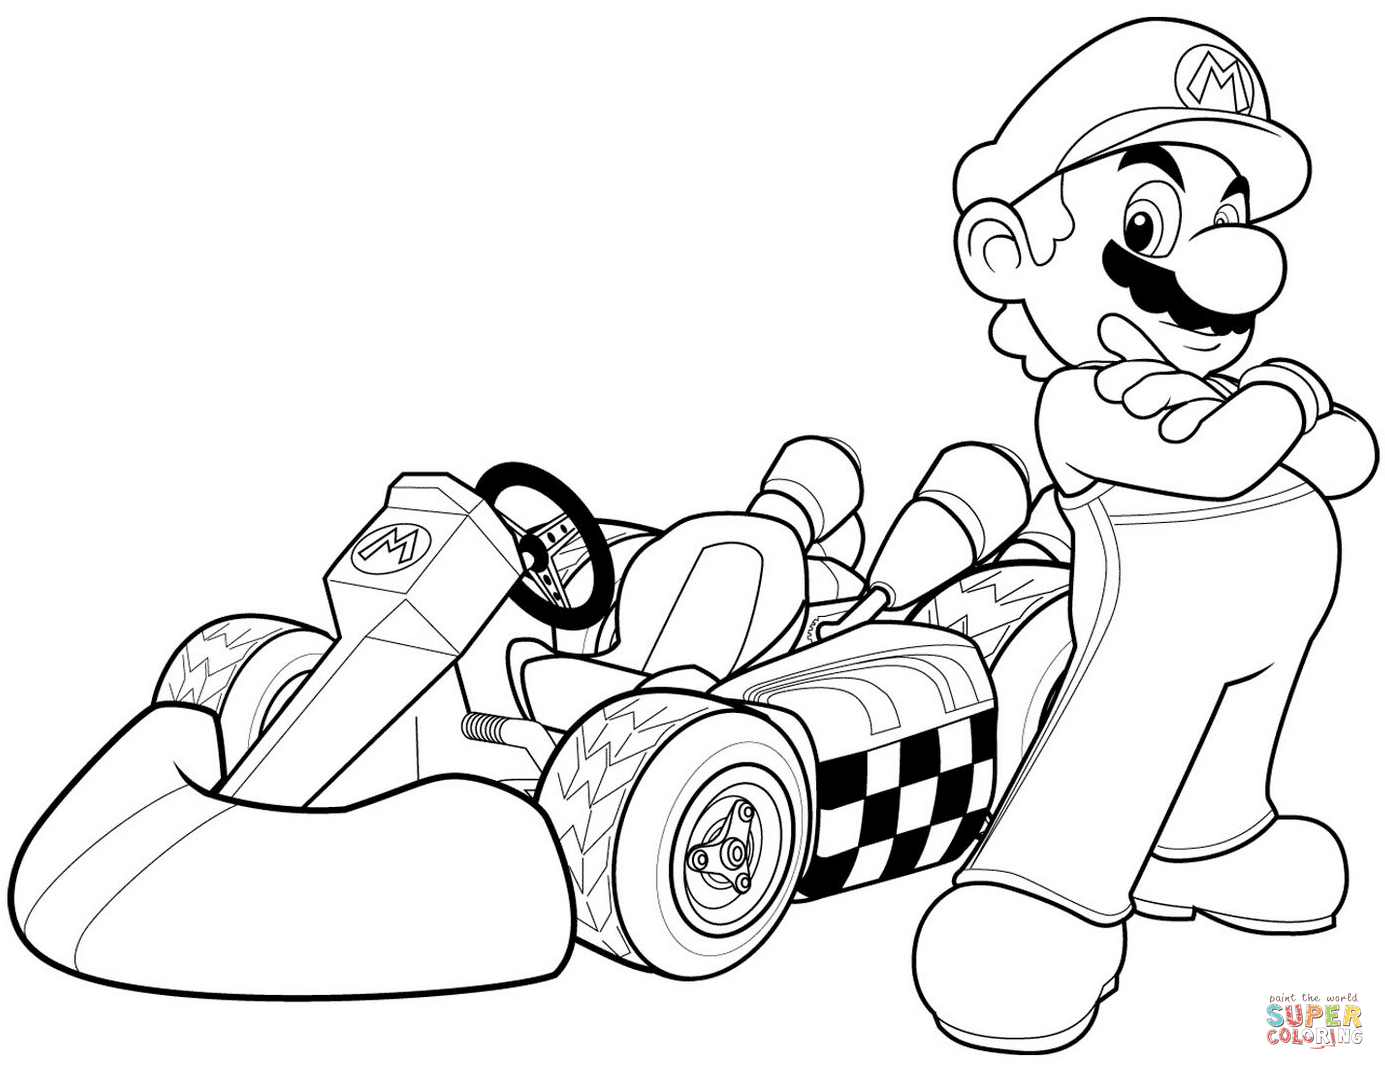 Click the mario in mario kart wii coloring pages to view printable version or color it online compatible with ipad and android tablets